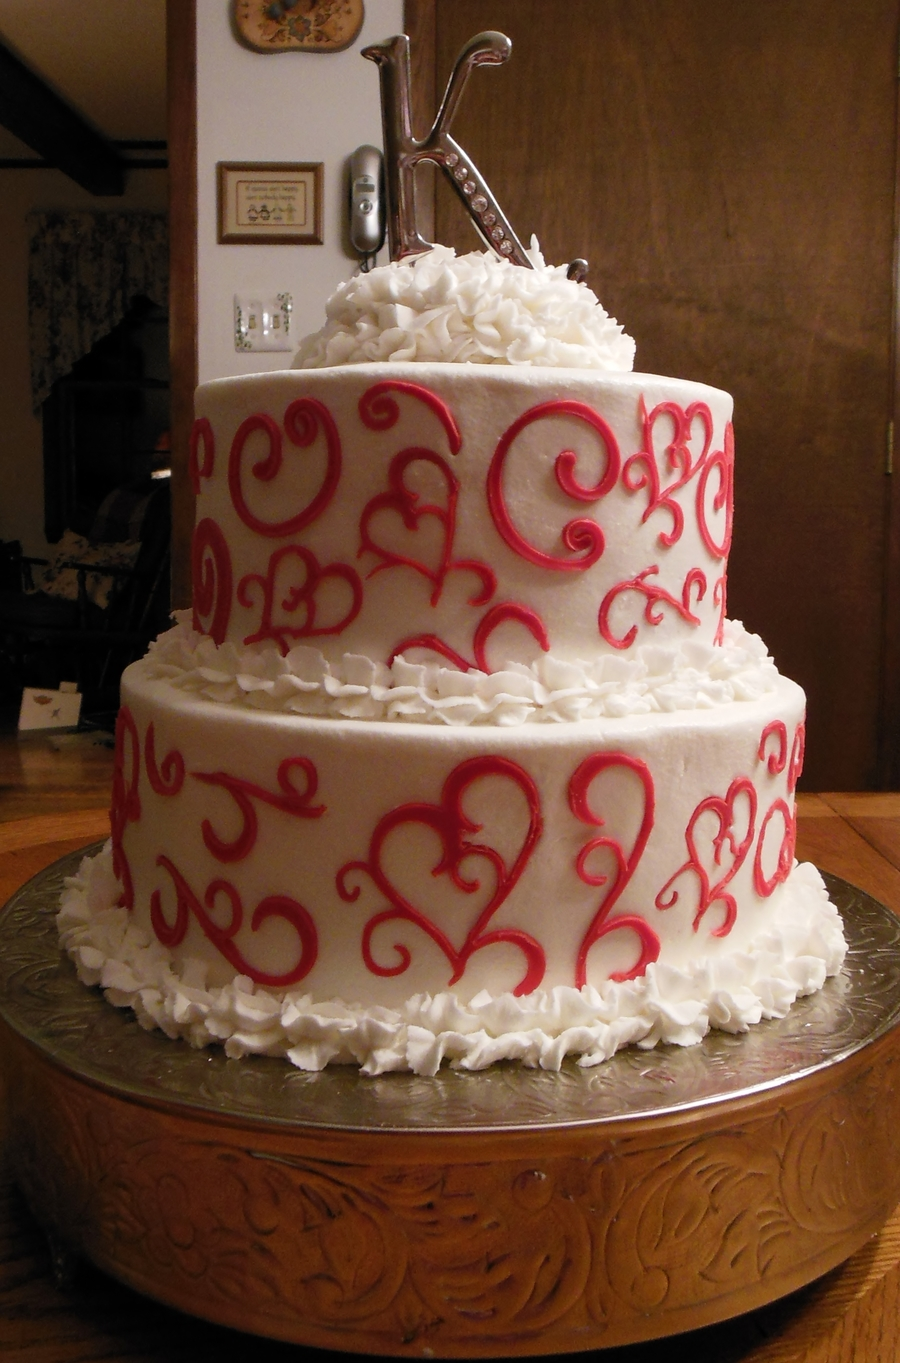 valentines day wedding cake 10 amp 8 round iced in buttercream with red fondant design. Black Bedroom Furniture Sets. Home Design Ideas